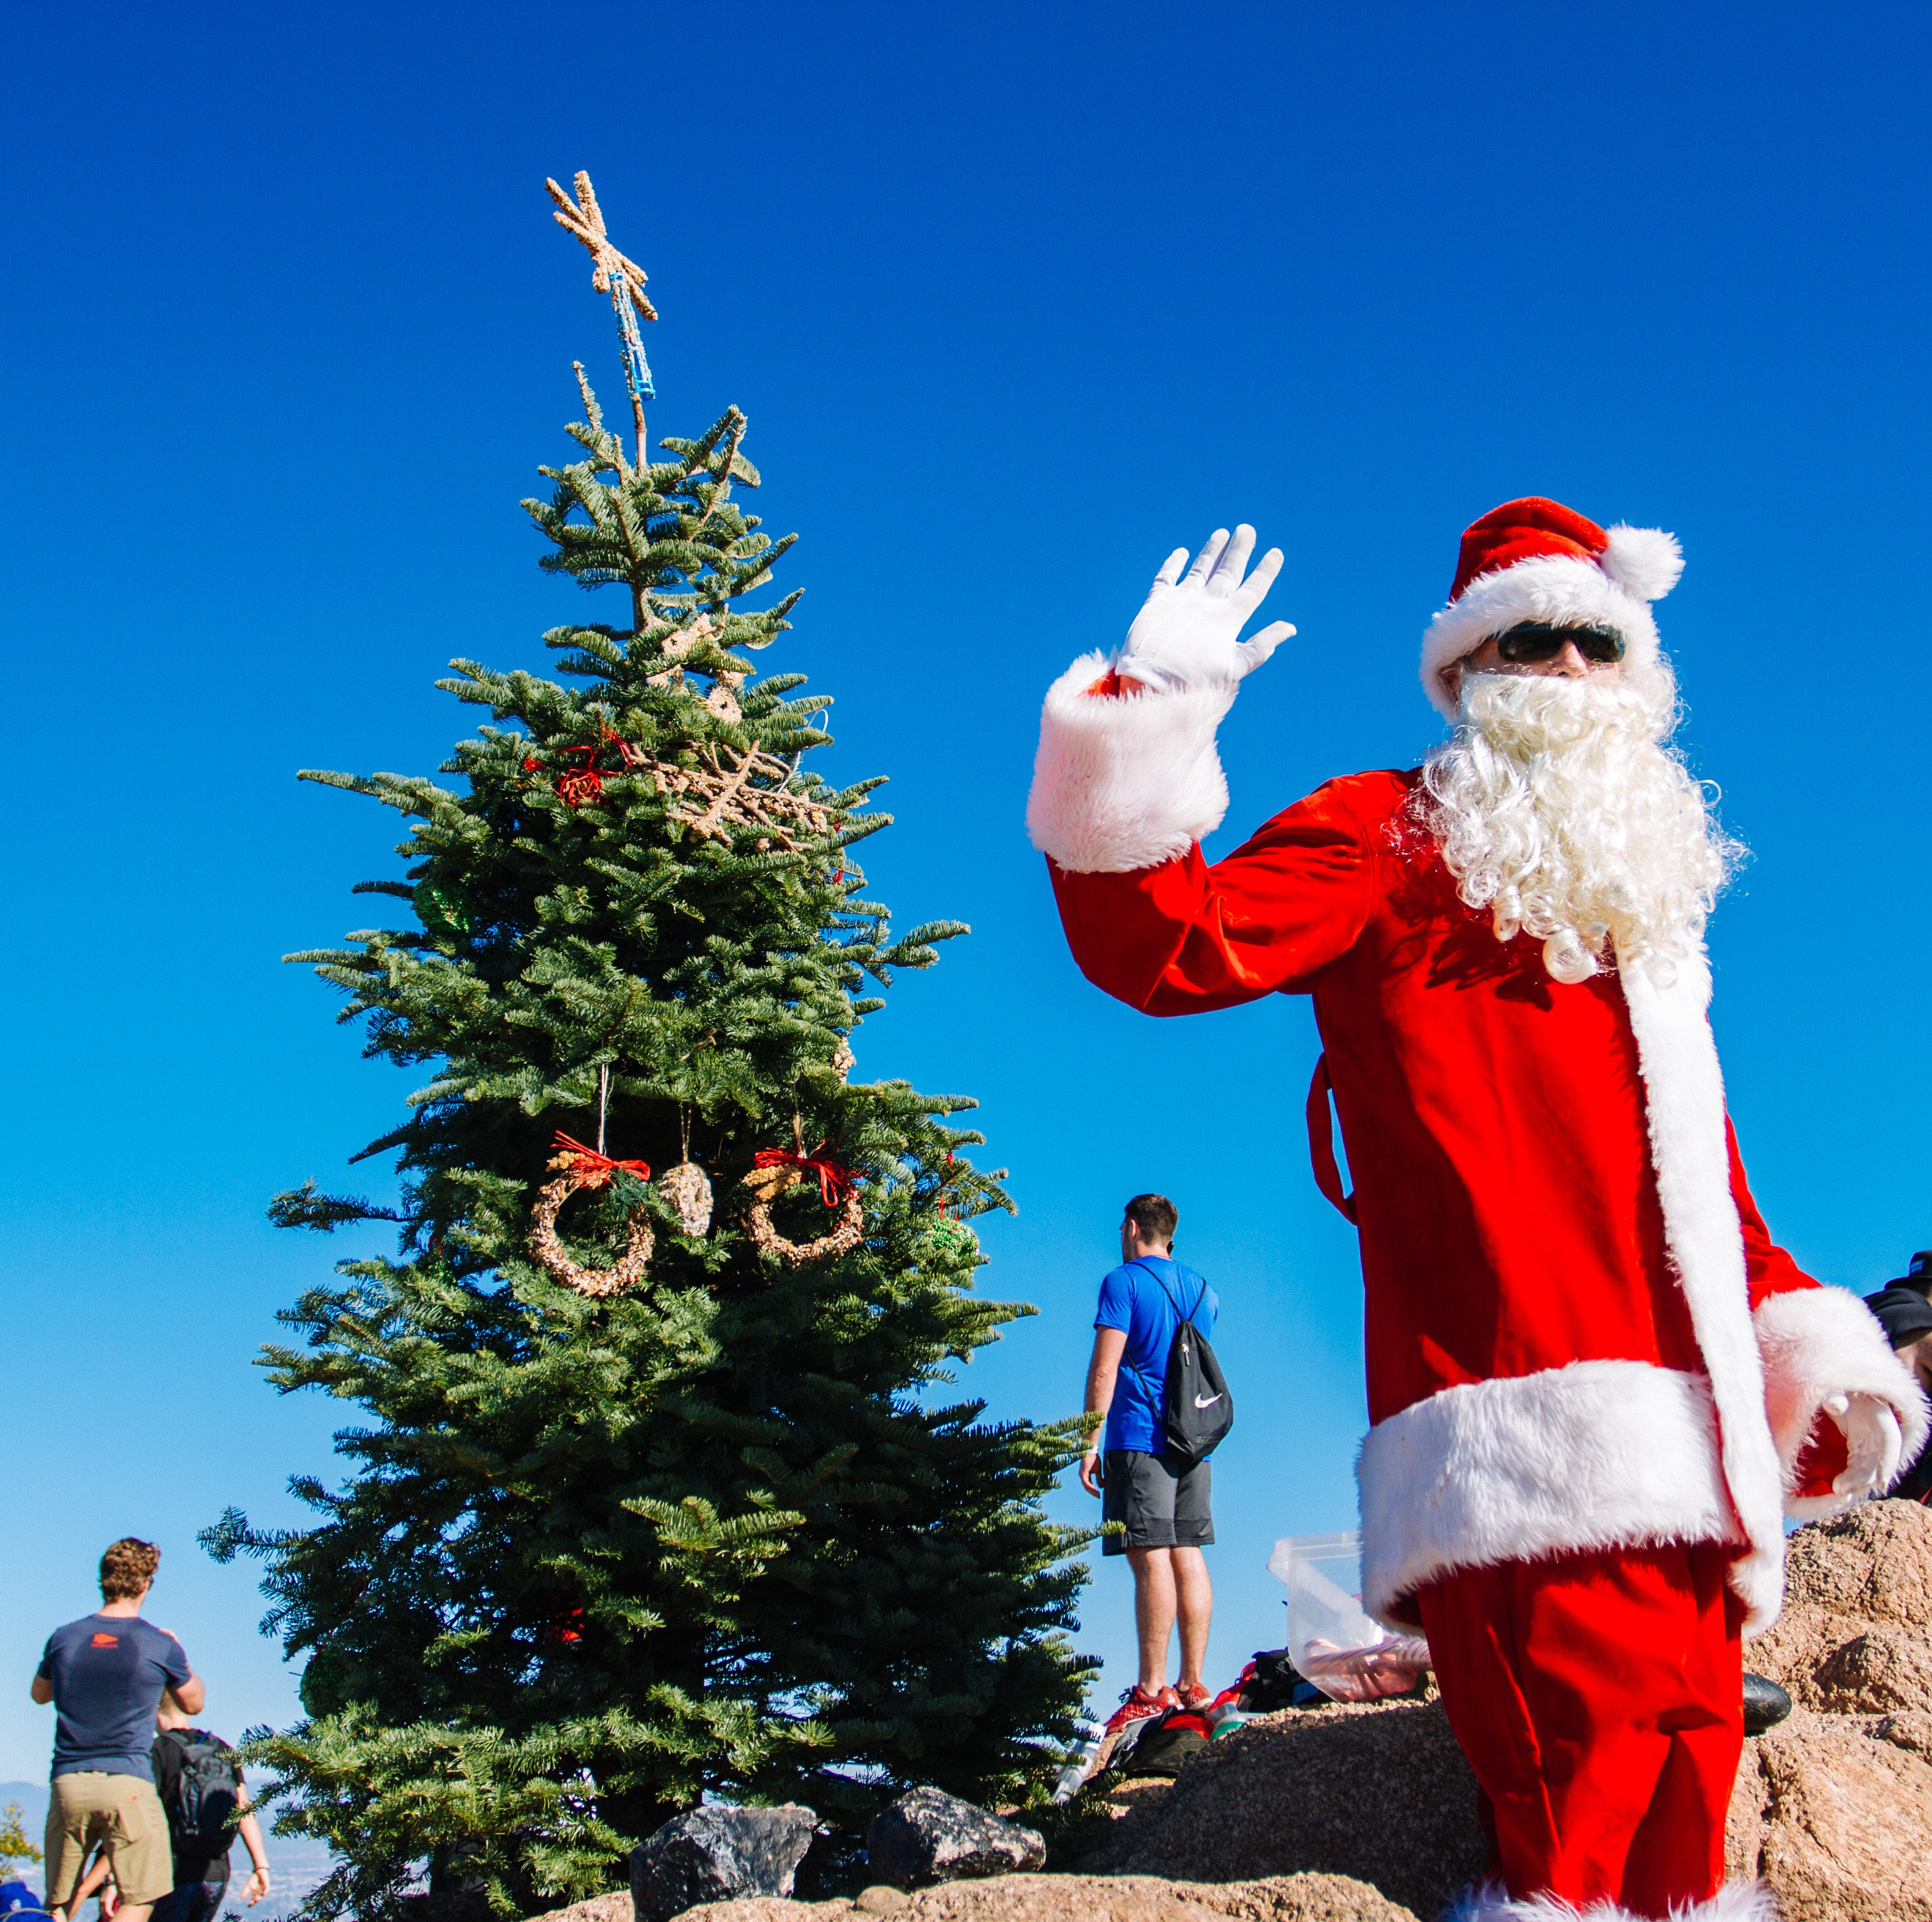 Camelback Mountain Christmas tree is back: Holiday cheer with a side of controversy